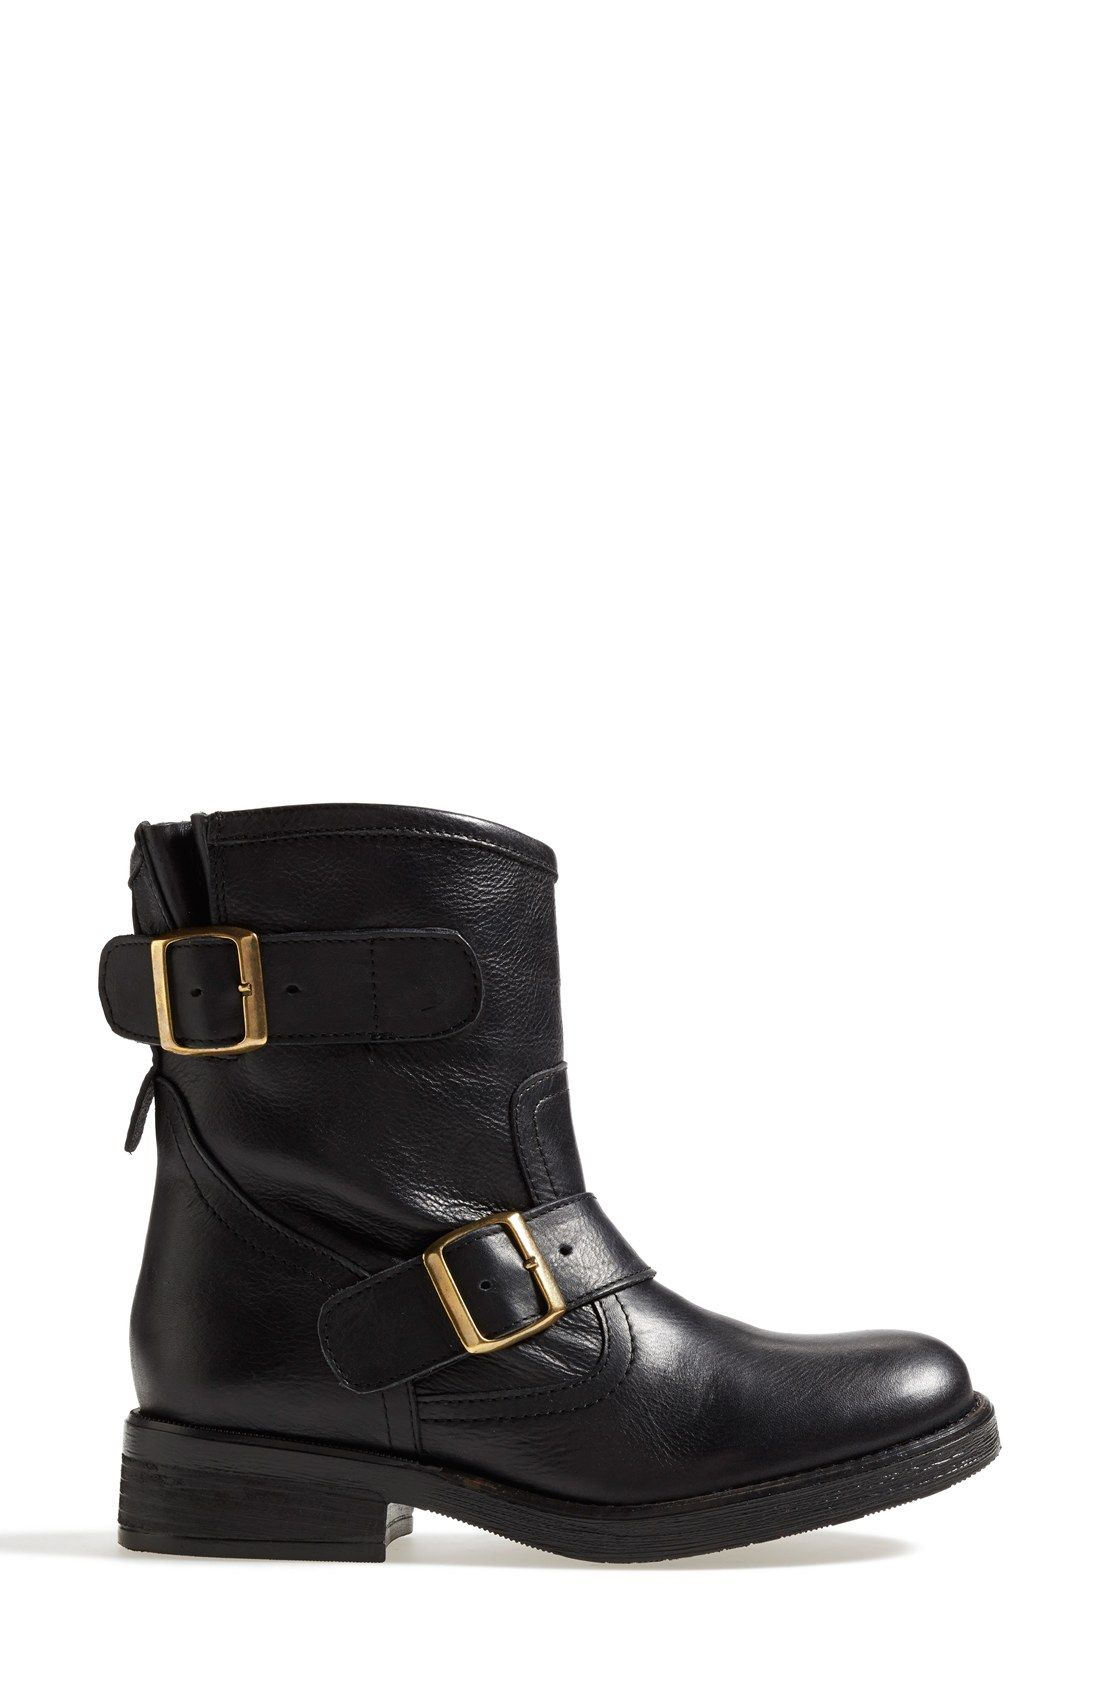 840e39205be Can t get enough of these black Steve Madden moto boots ...